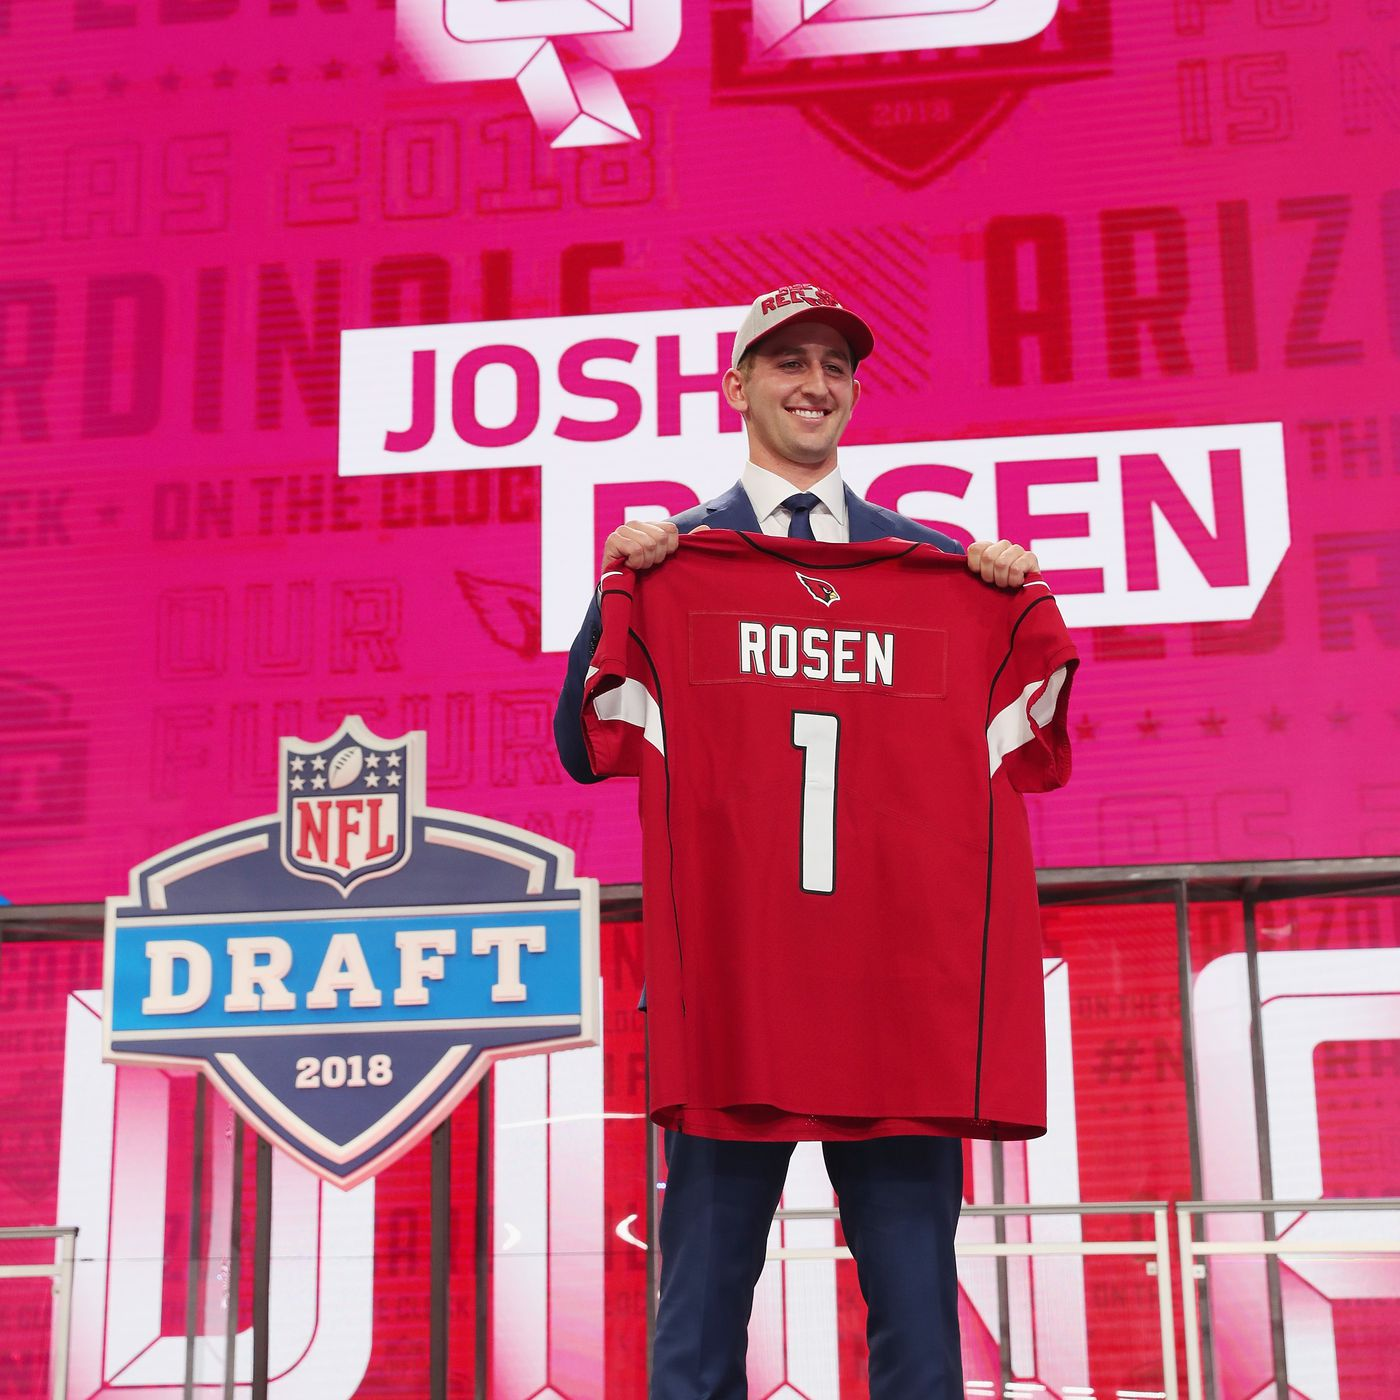 63bd9fbbf Josh Rosen signs contract with Arizona Cardinals - Revenge of the Birds